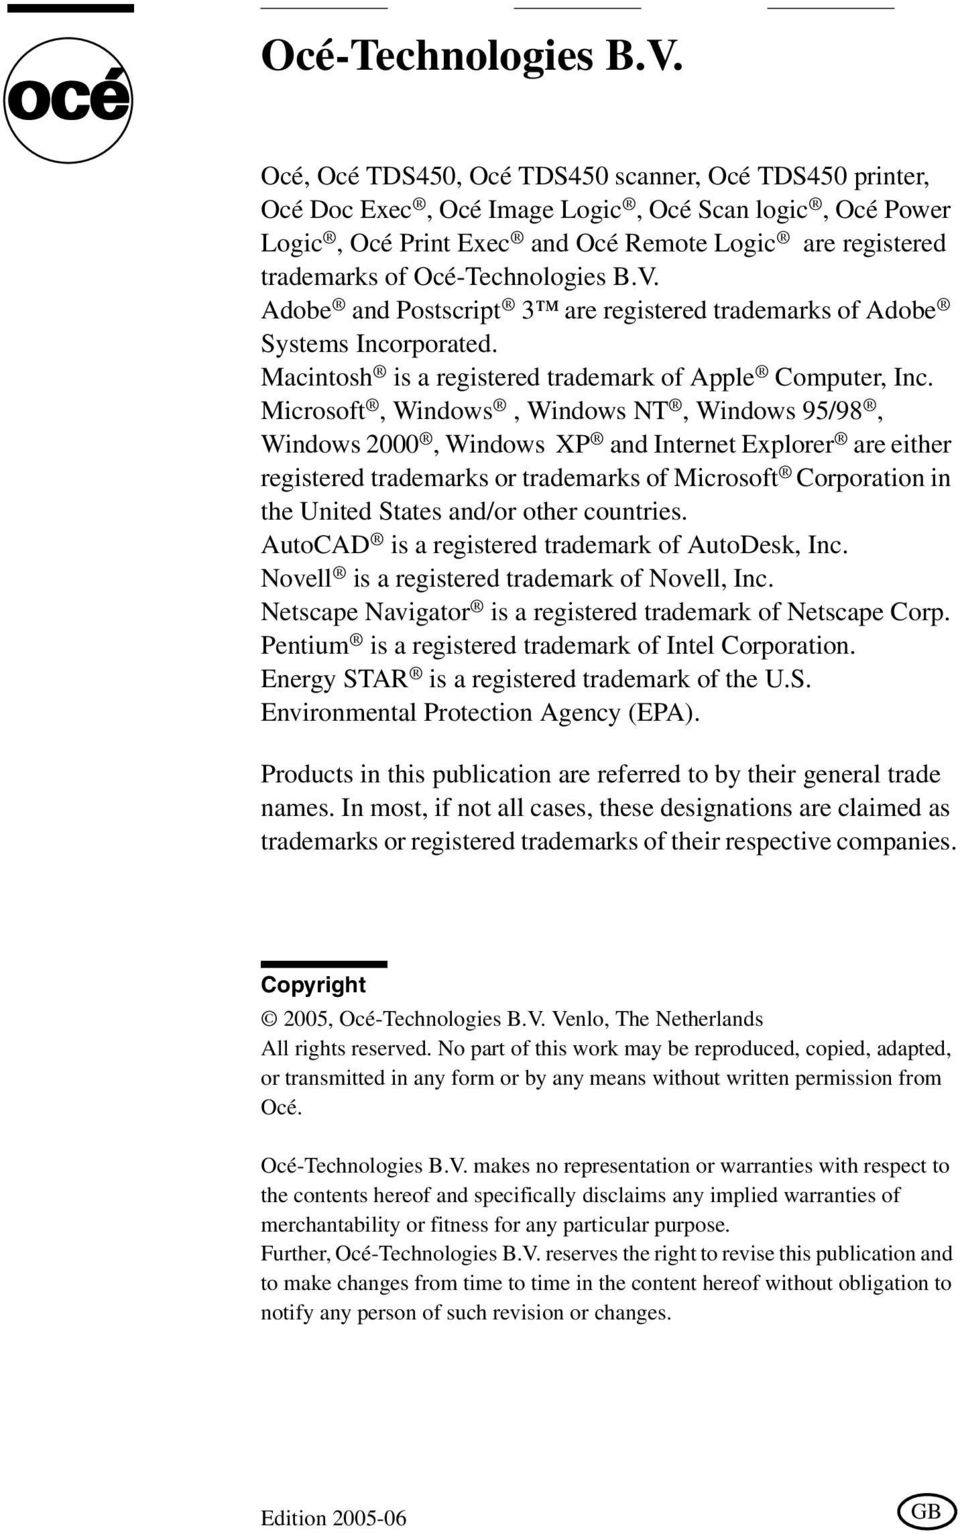 Postscript 3 are registered trademarks of Adobe Systems Incorporated. Macintosh is a registered trademark of Apple Computer, Inc.